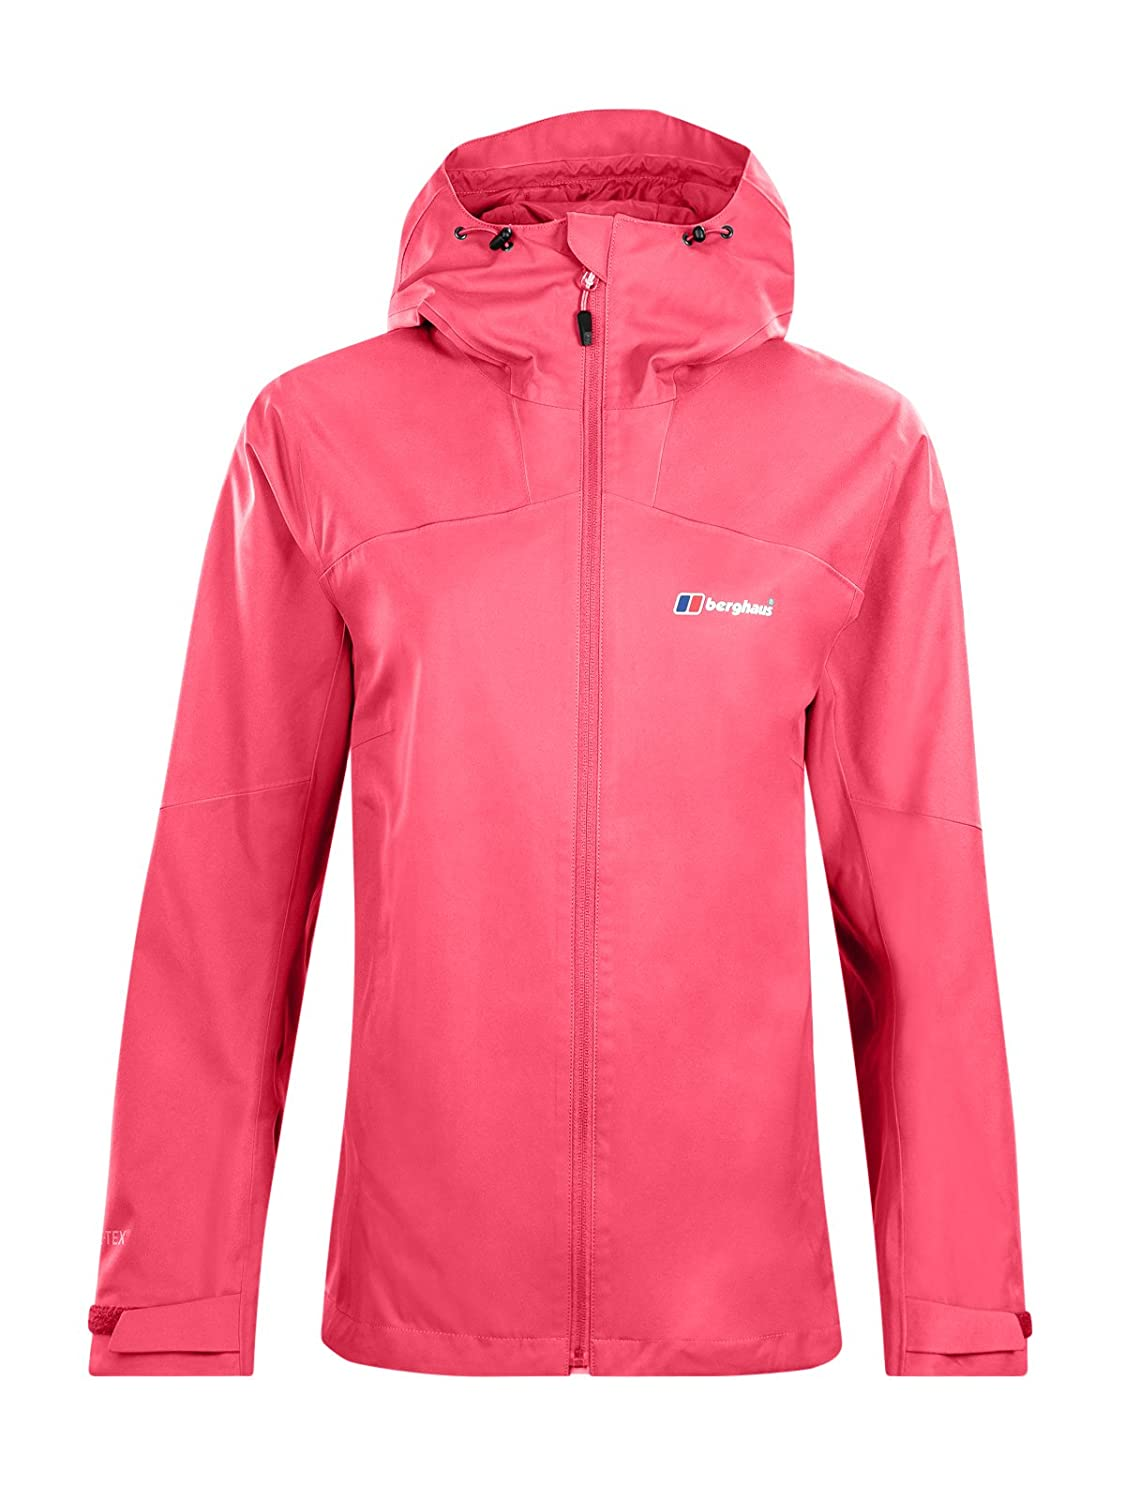 Pink Peacock Size 10 Berghaus Women's Fellmaster Gore-Tex Waterproof Jacket'